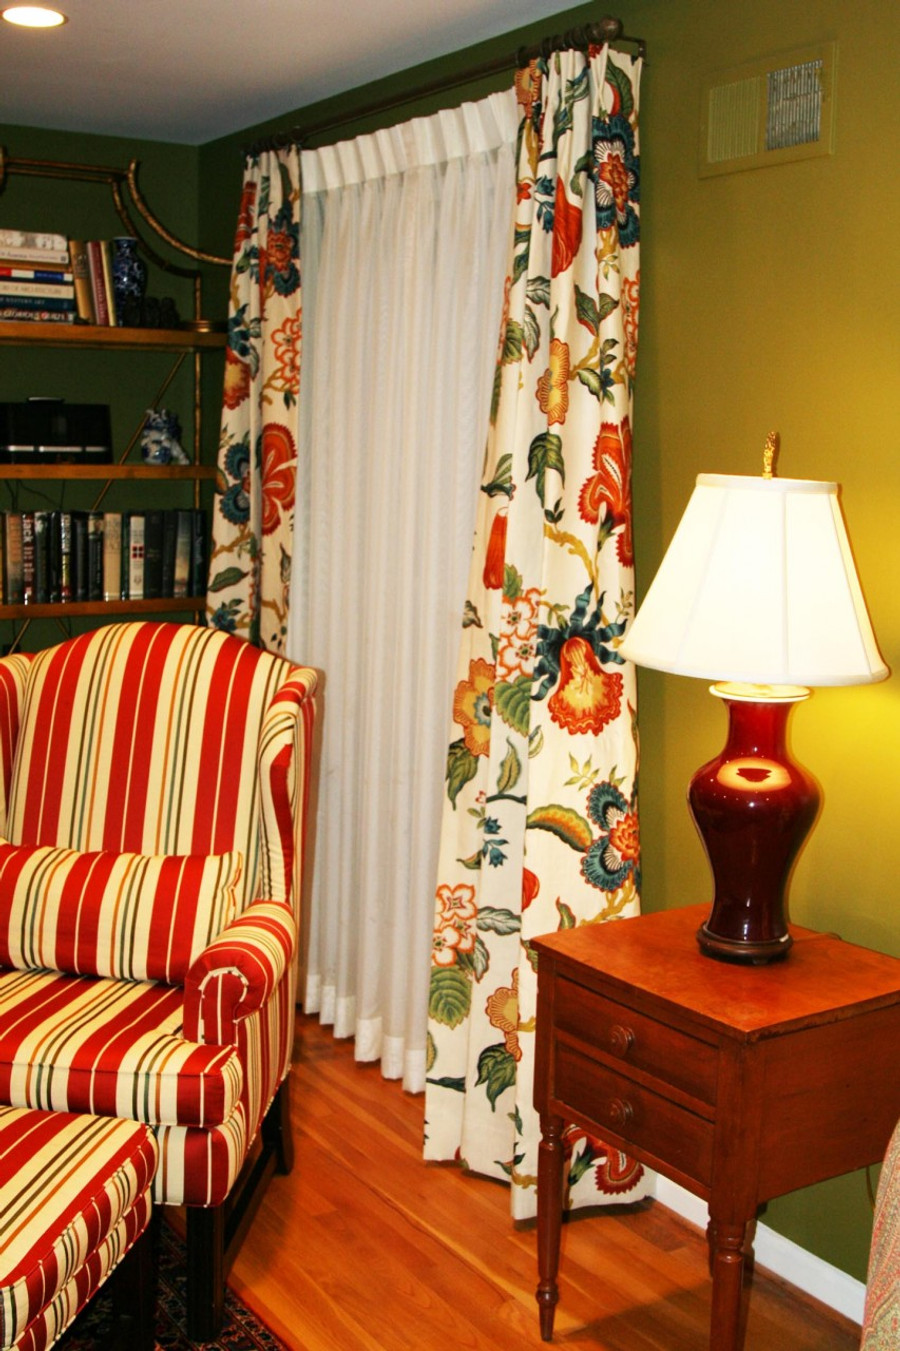 Custom Pleated Drapes by Lynn Chalk in Schumacher Celerie Kemble Hot House Flowers Spark installed in client's house